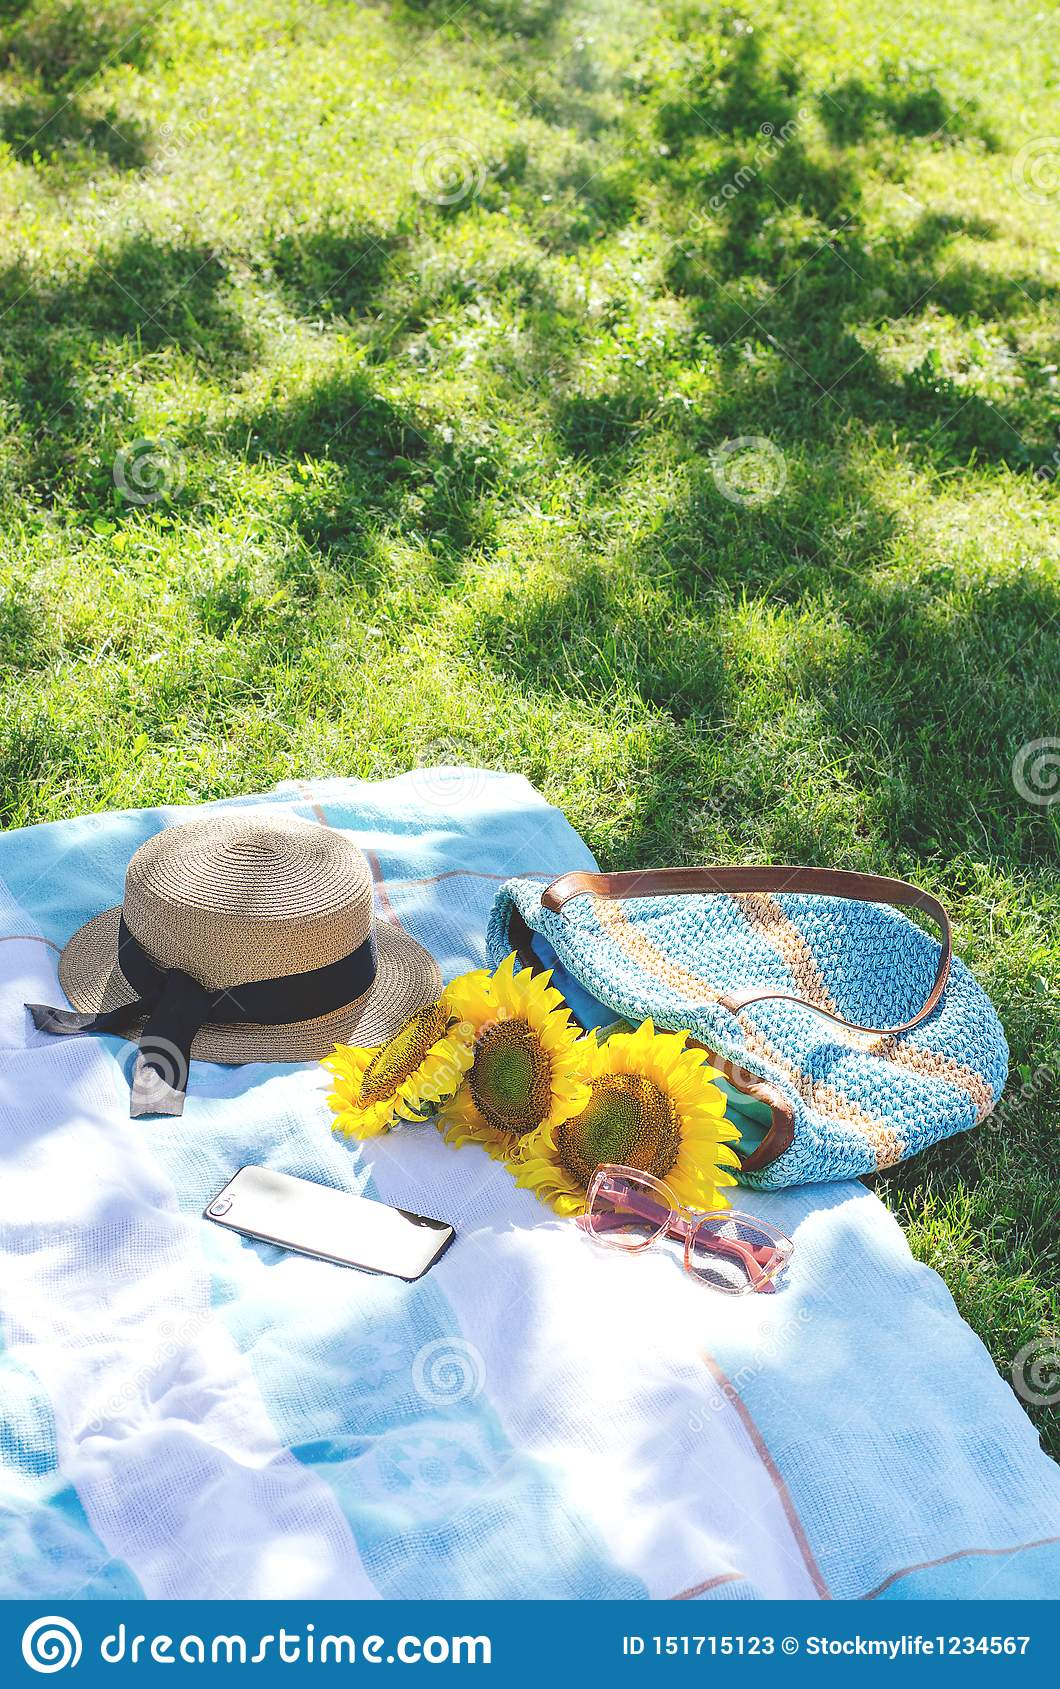 Summer picnic on the green grass with bright accessories